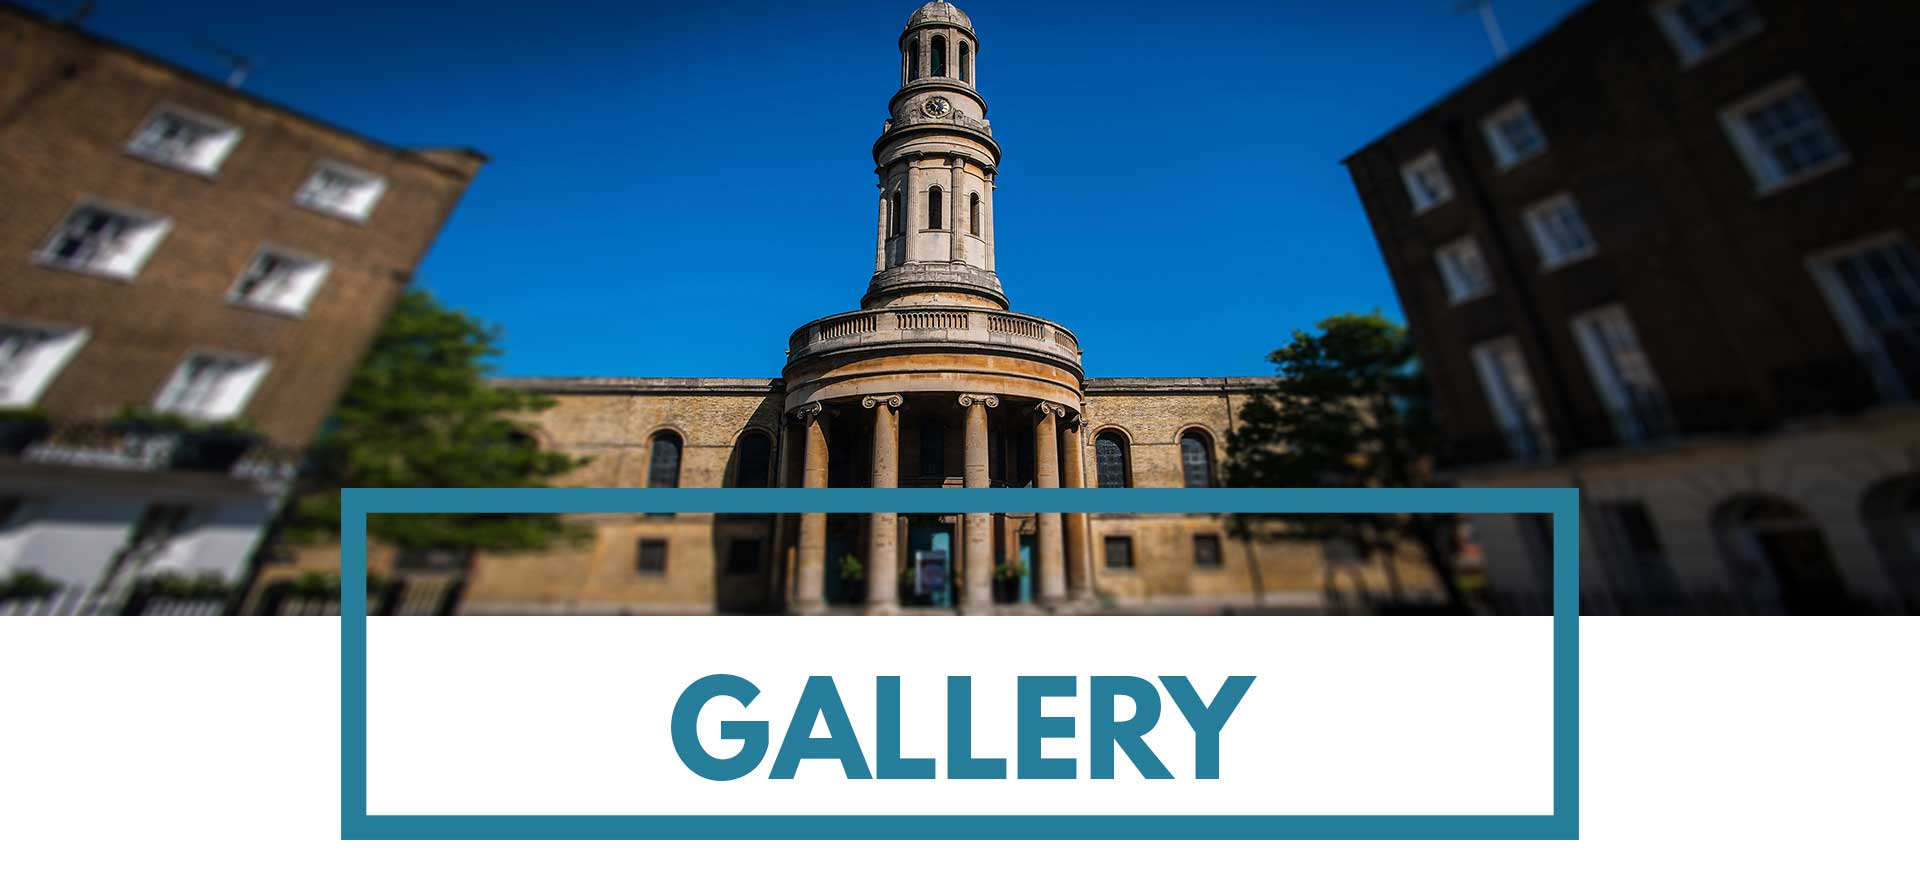 Header image of the church for the photo gallery of St Mary's Venue Hire, London